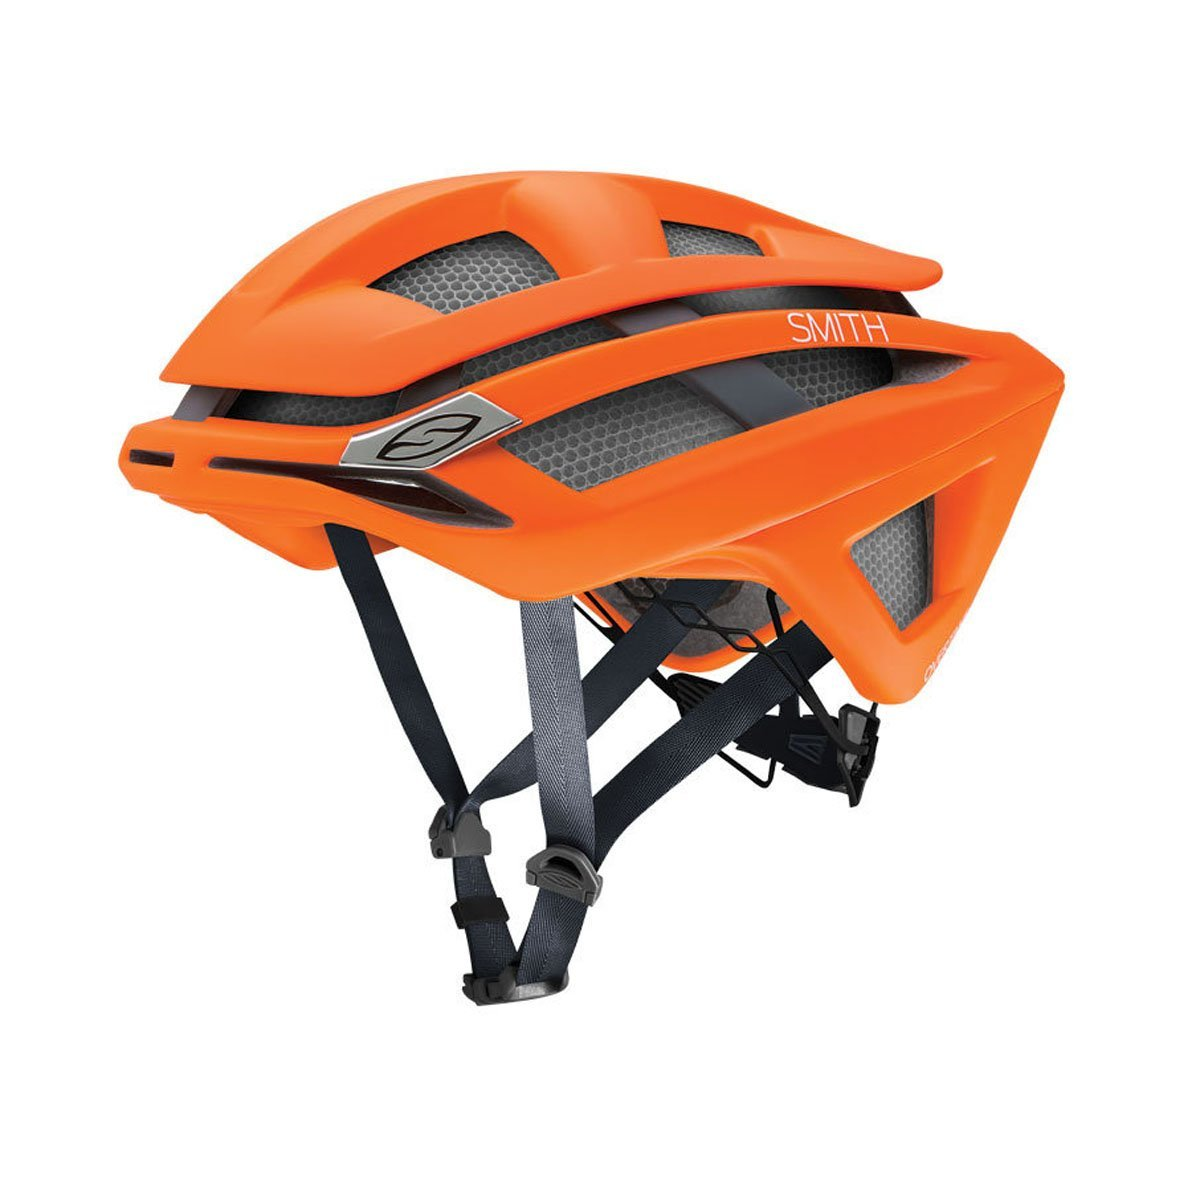 Small Smith Optics Bicycle Helmets